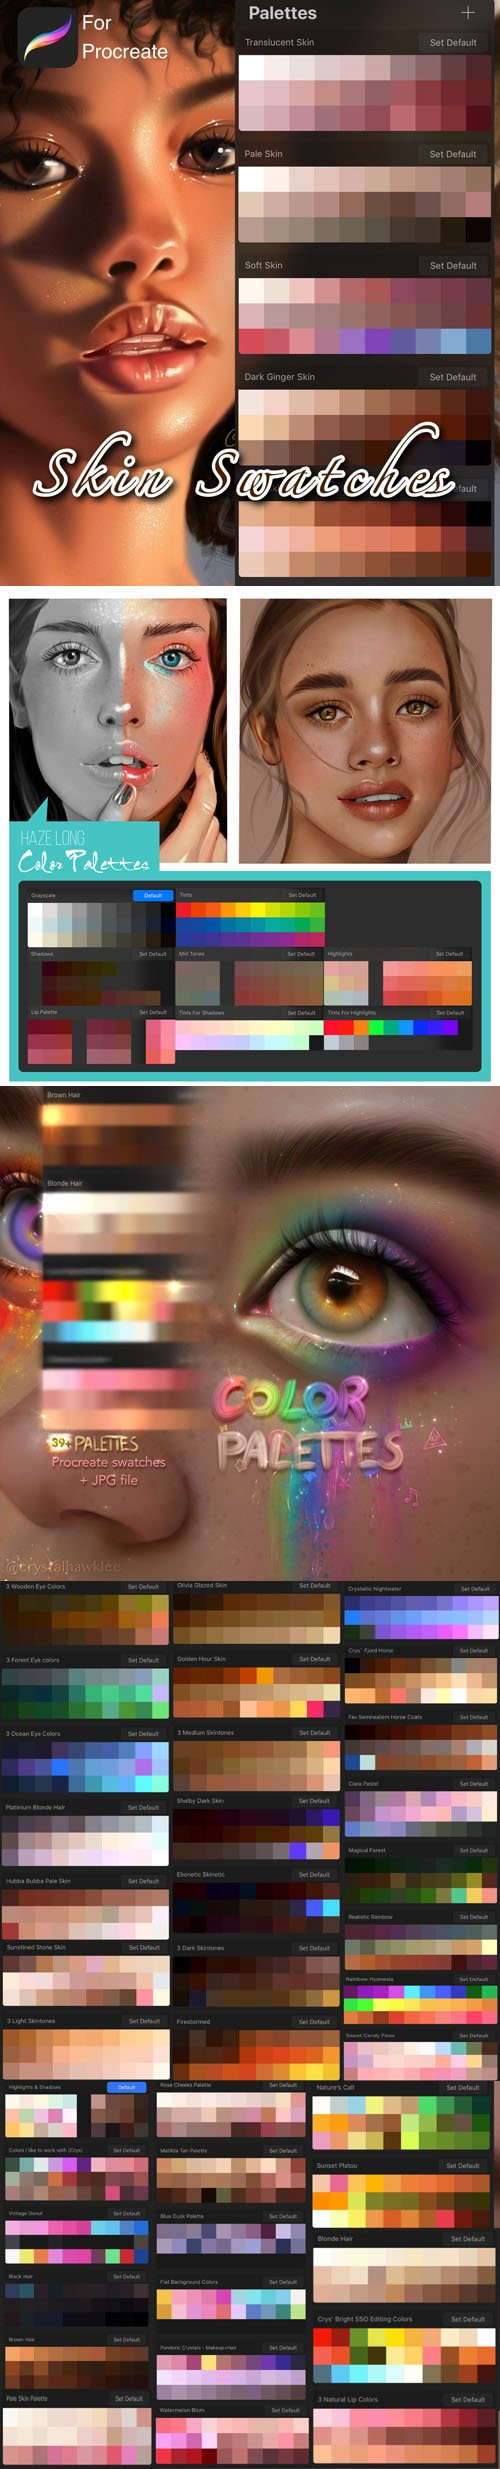 50+ Skin & Painting Portraits Swatches for Procreate